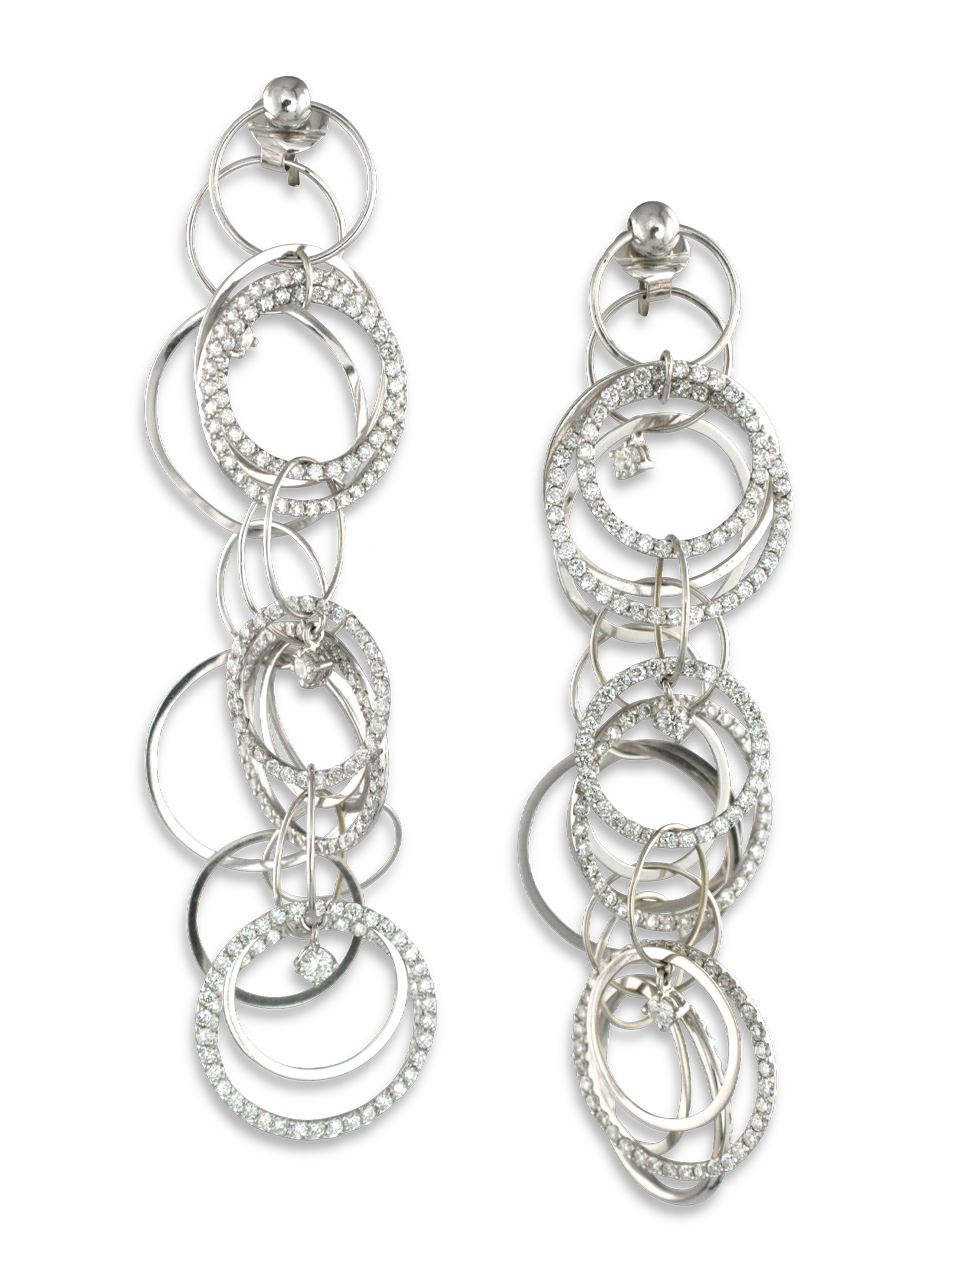 18k White Gold and Diamond Multi-Hoop Link Earrings-1